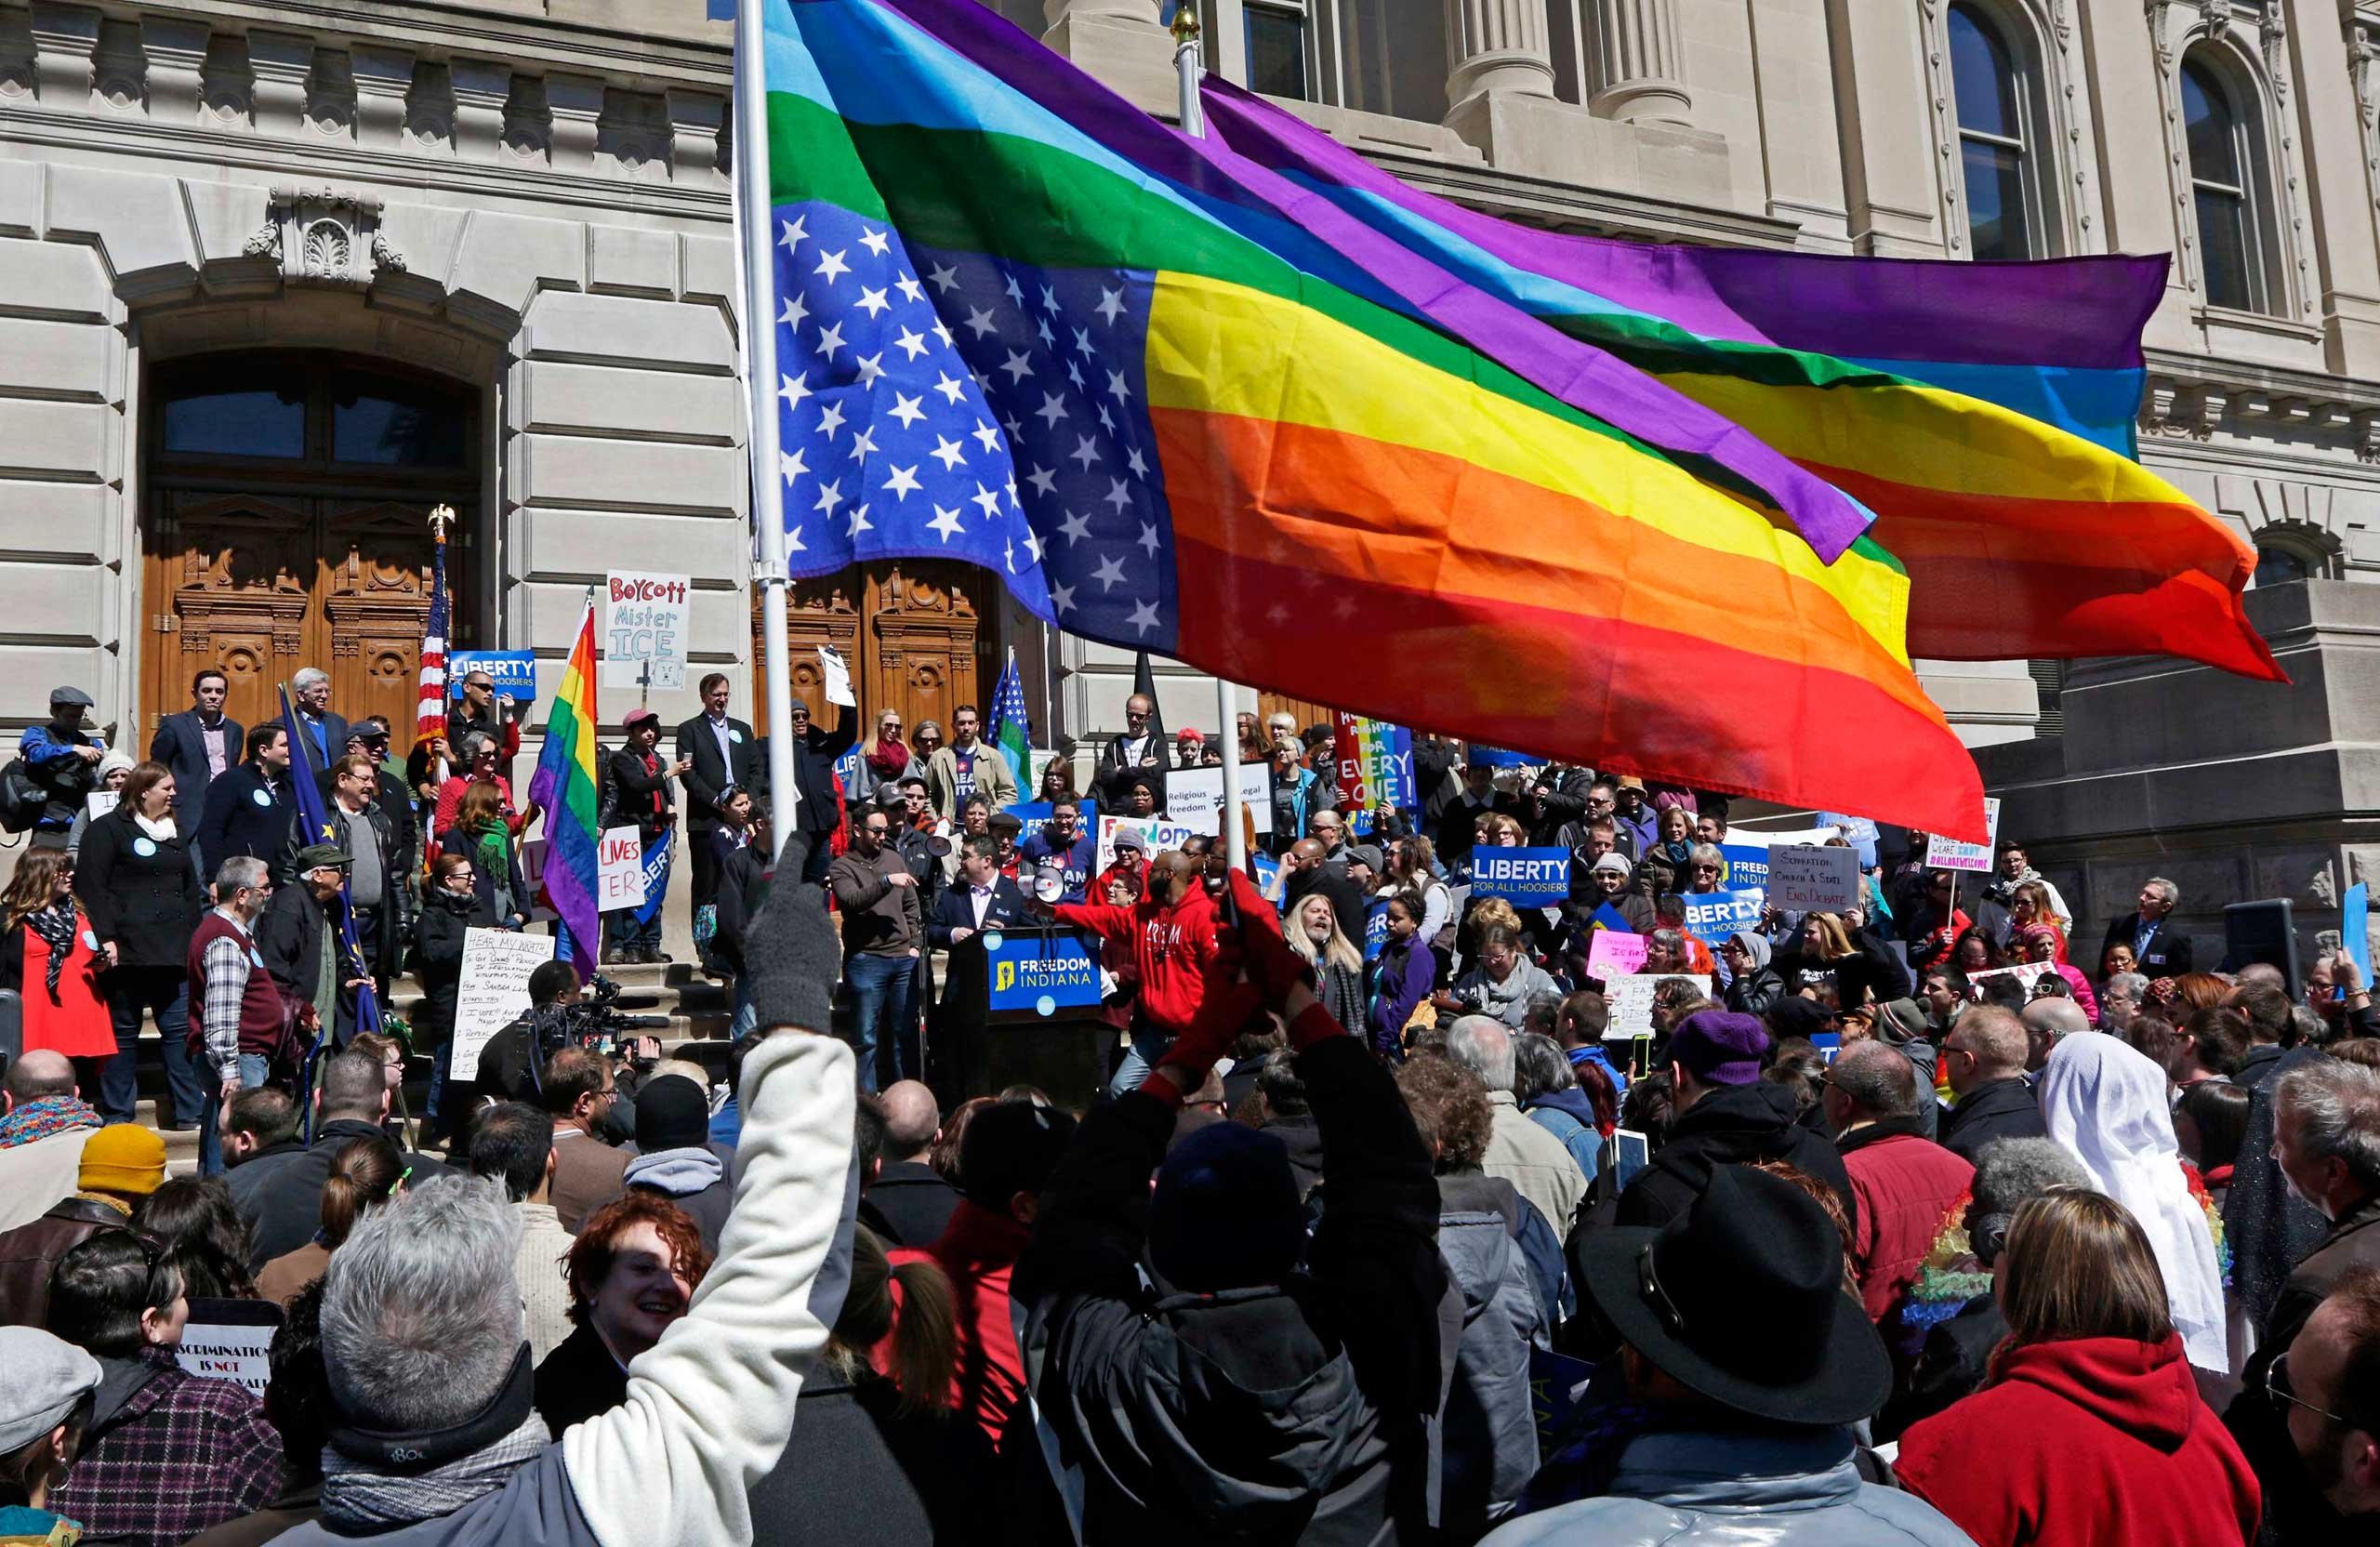 Demonstrators gather to protest a controversial religious freedom bill recently signed by Governor Mike Pence, during a rally at Monument Circle in Indianapolis on March 28, 2015.